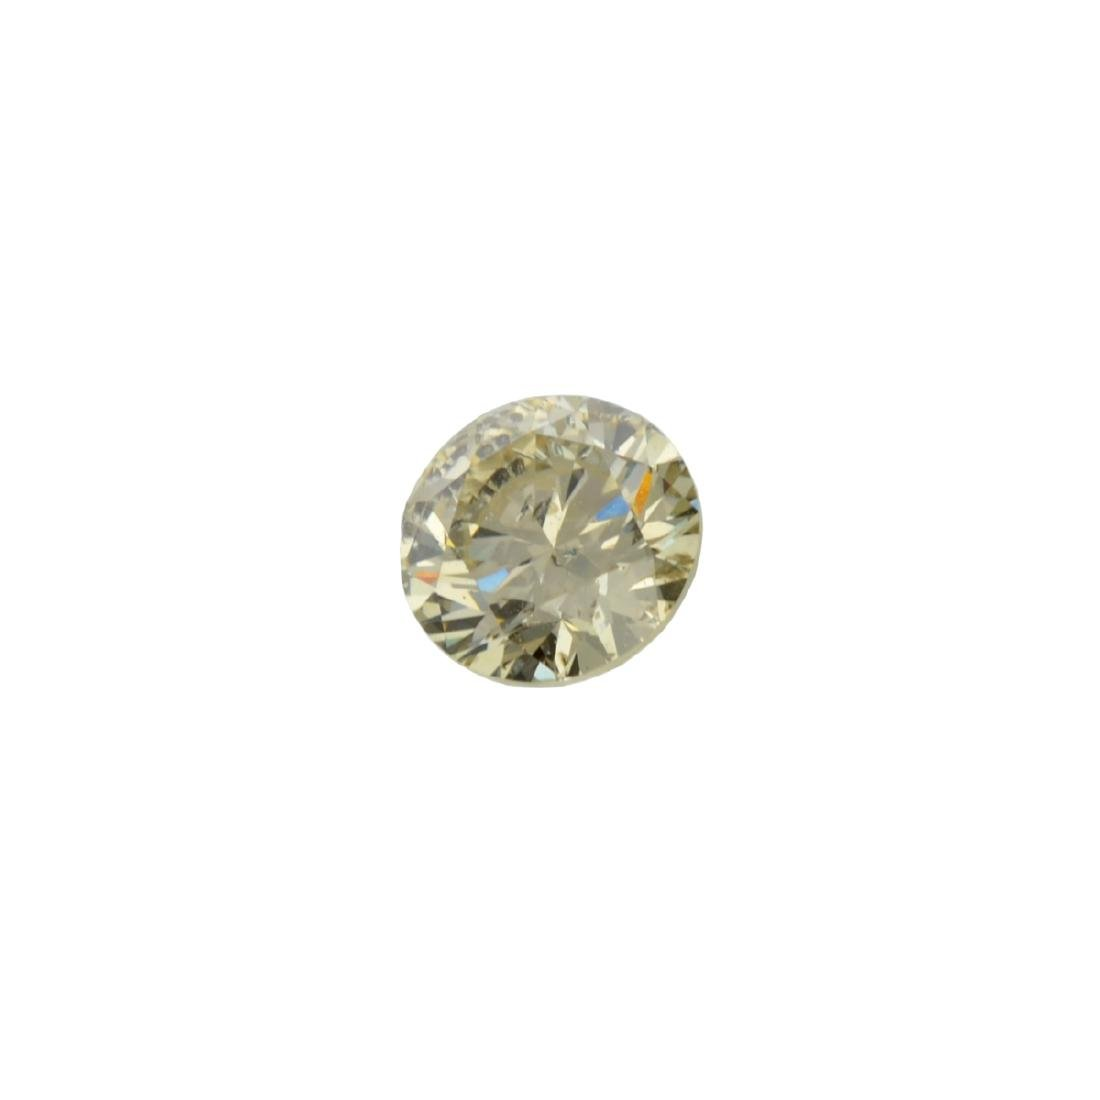 Fine Jewelry GIA Certified 0.71CT Brilliant Round Cut